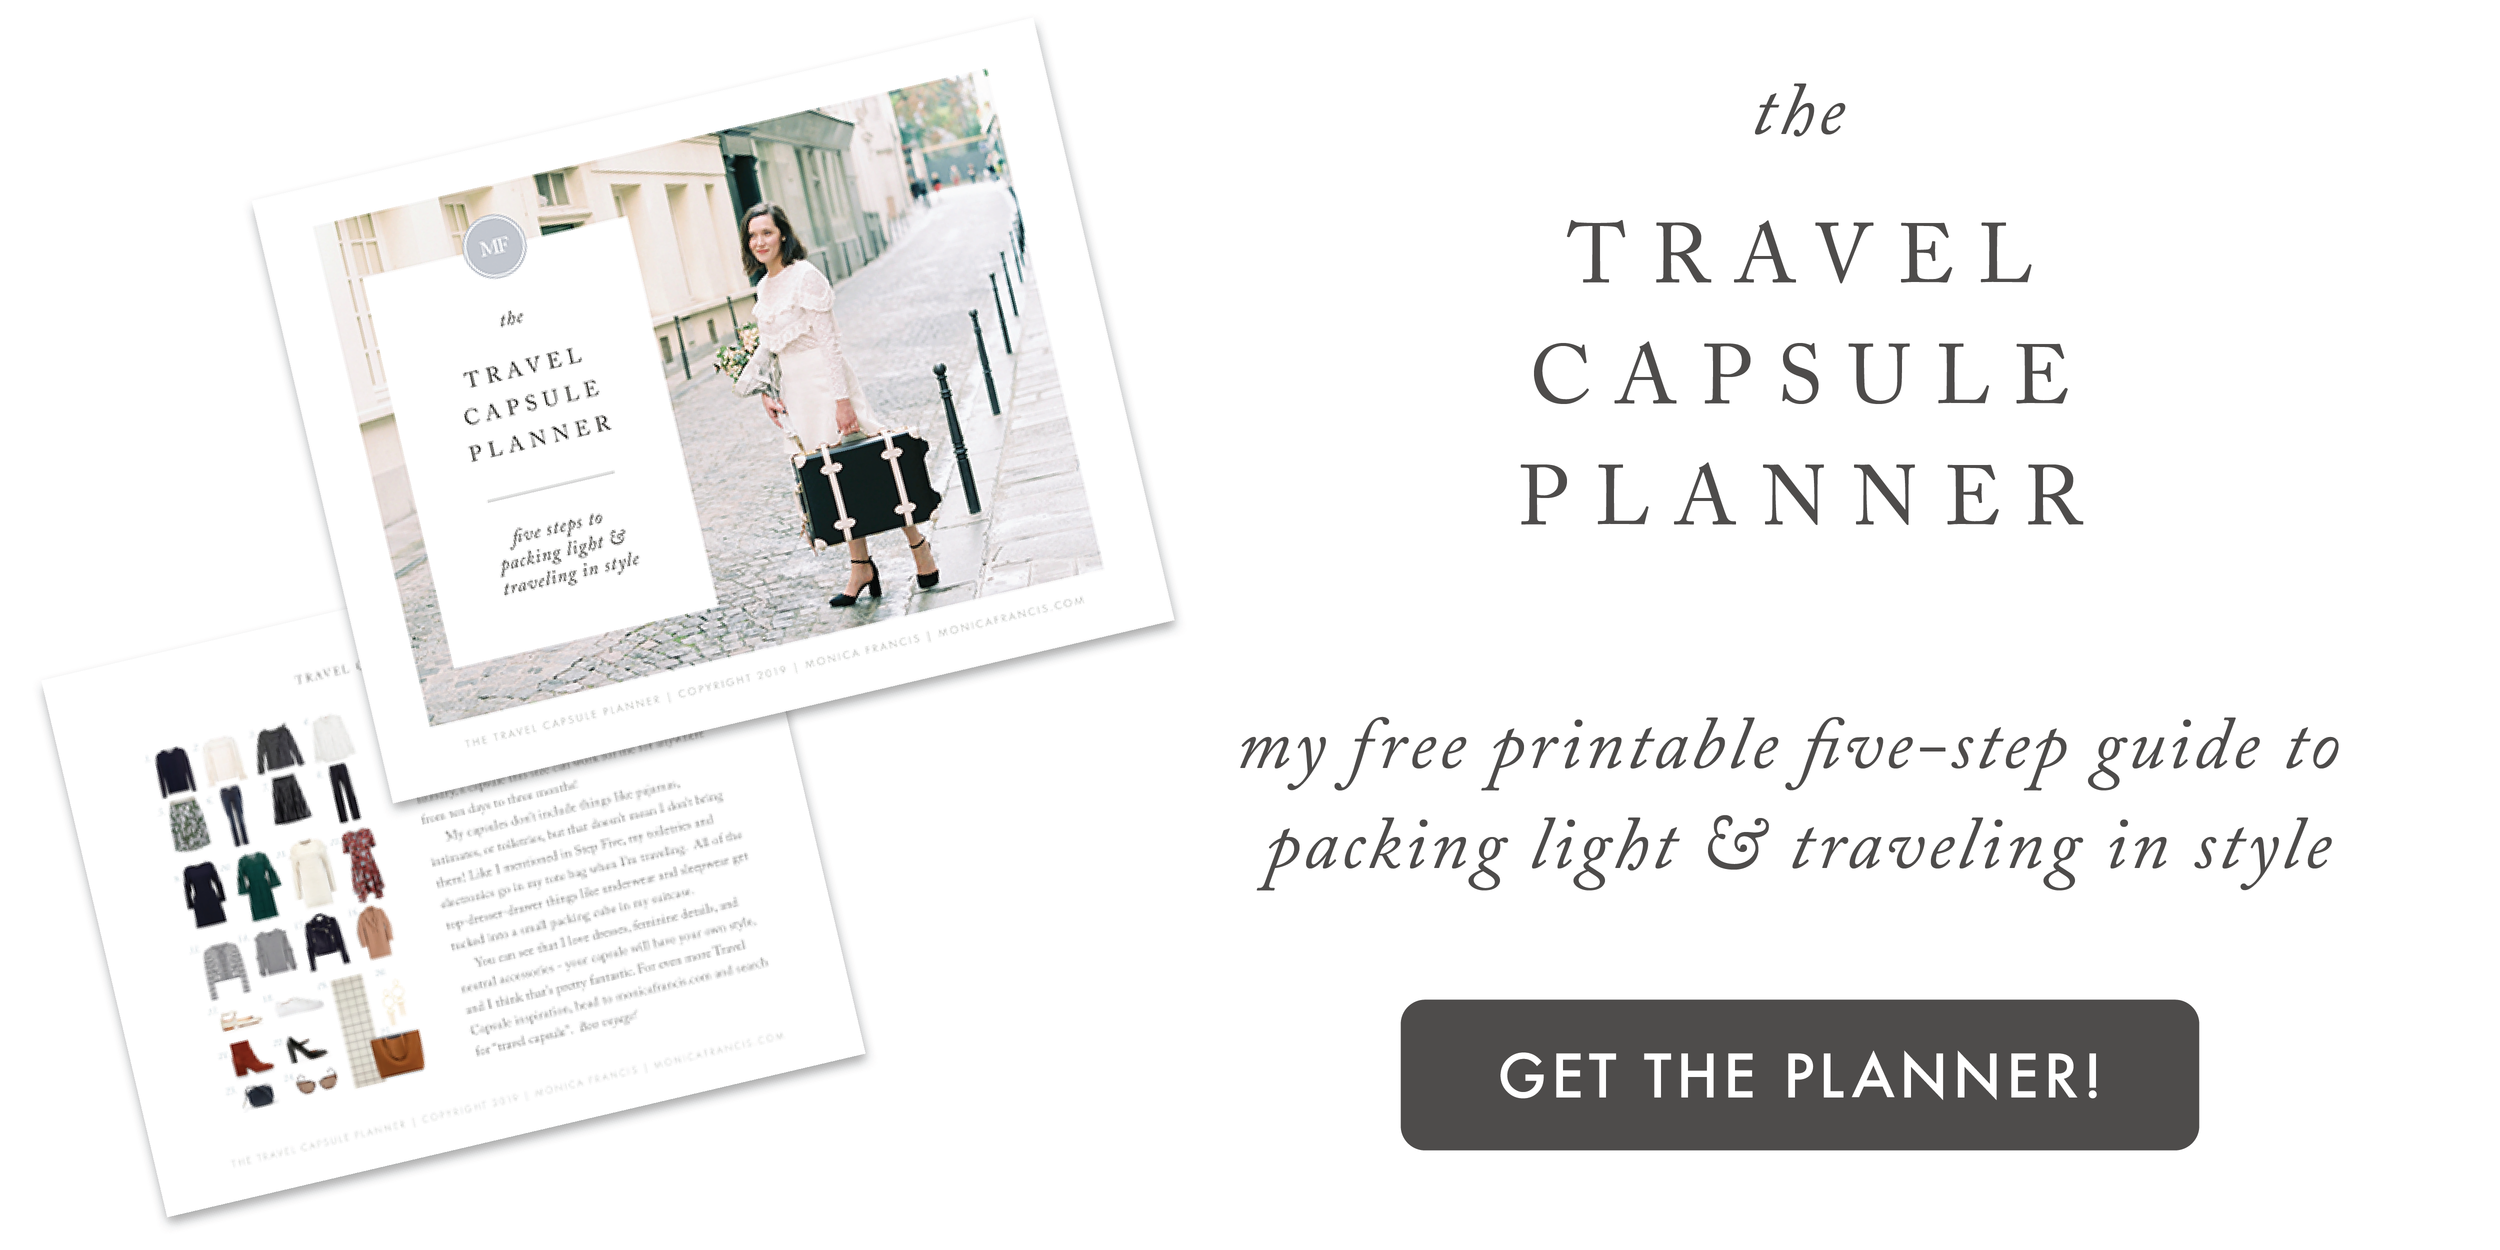 Going somewhere? Design a travel capsule wardrobe for your next trip with my five-step guide to packing light and traveling in style. Download the free printable Travel Capsule Wardrobe Planner at monicafrancis.com